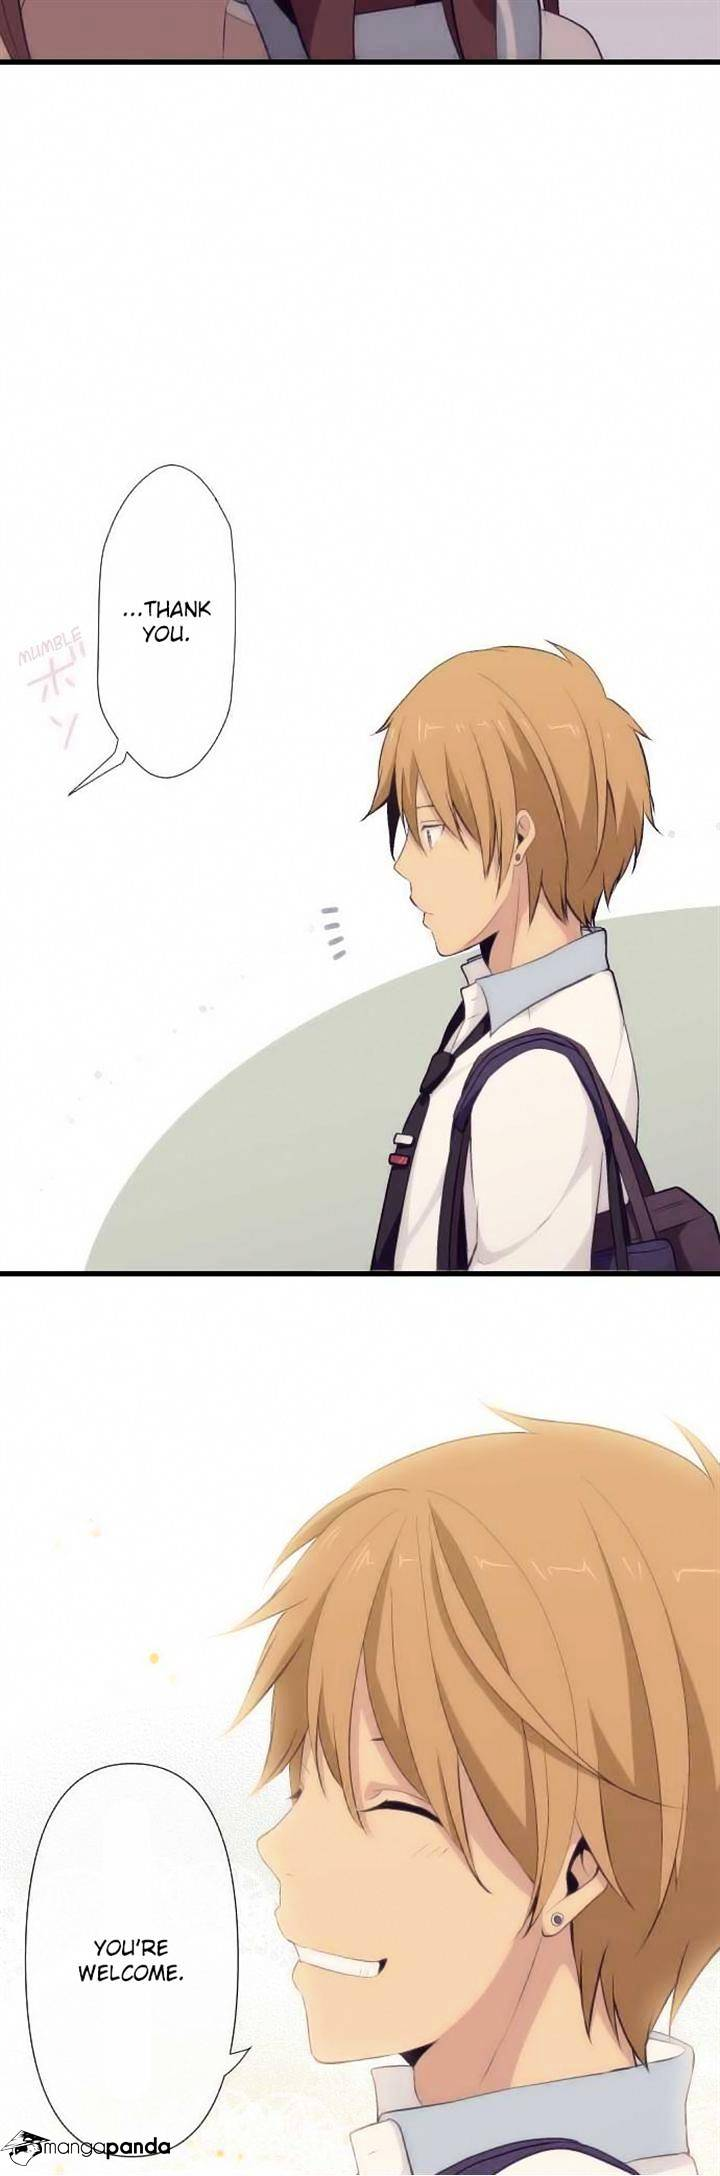 ReLIFE Chapter 68  Online Free Manga Read Image 16